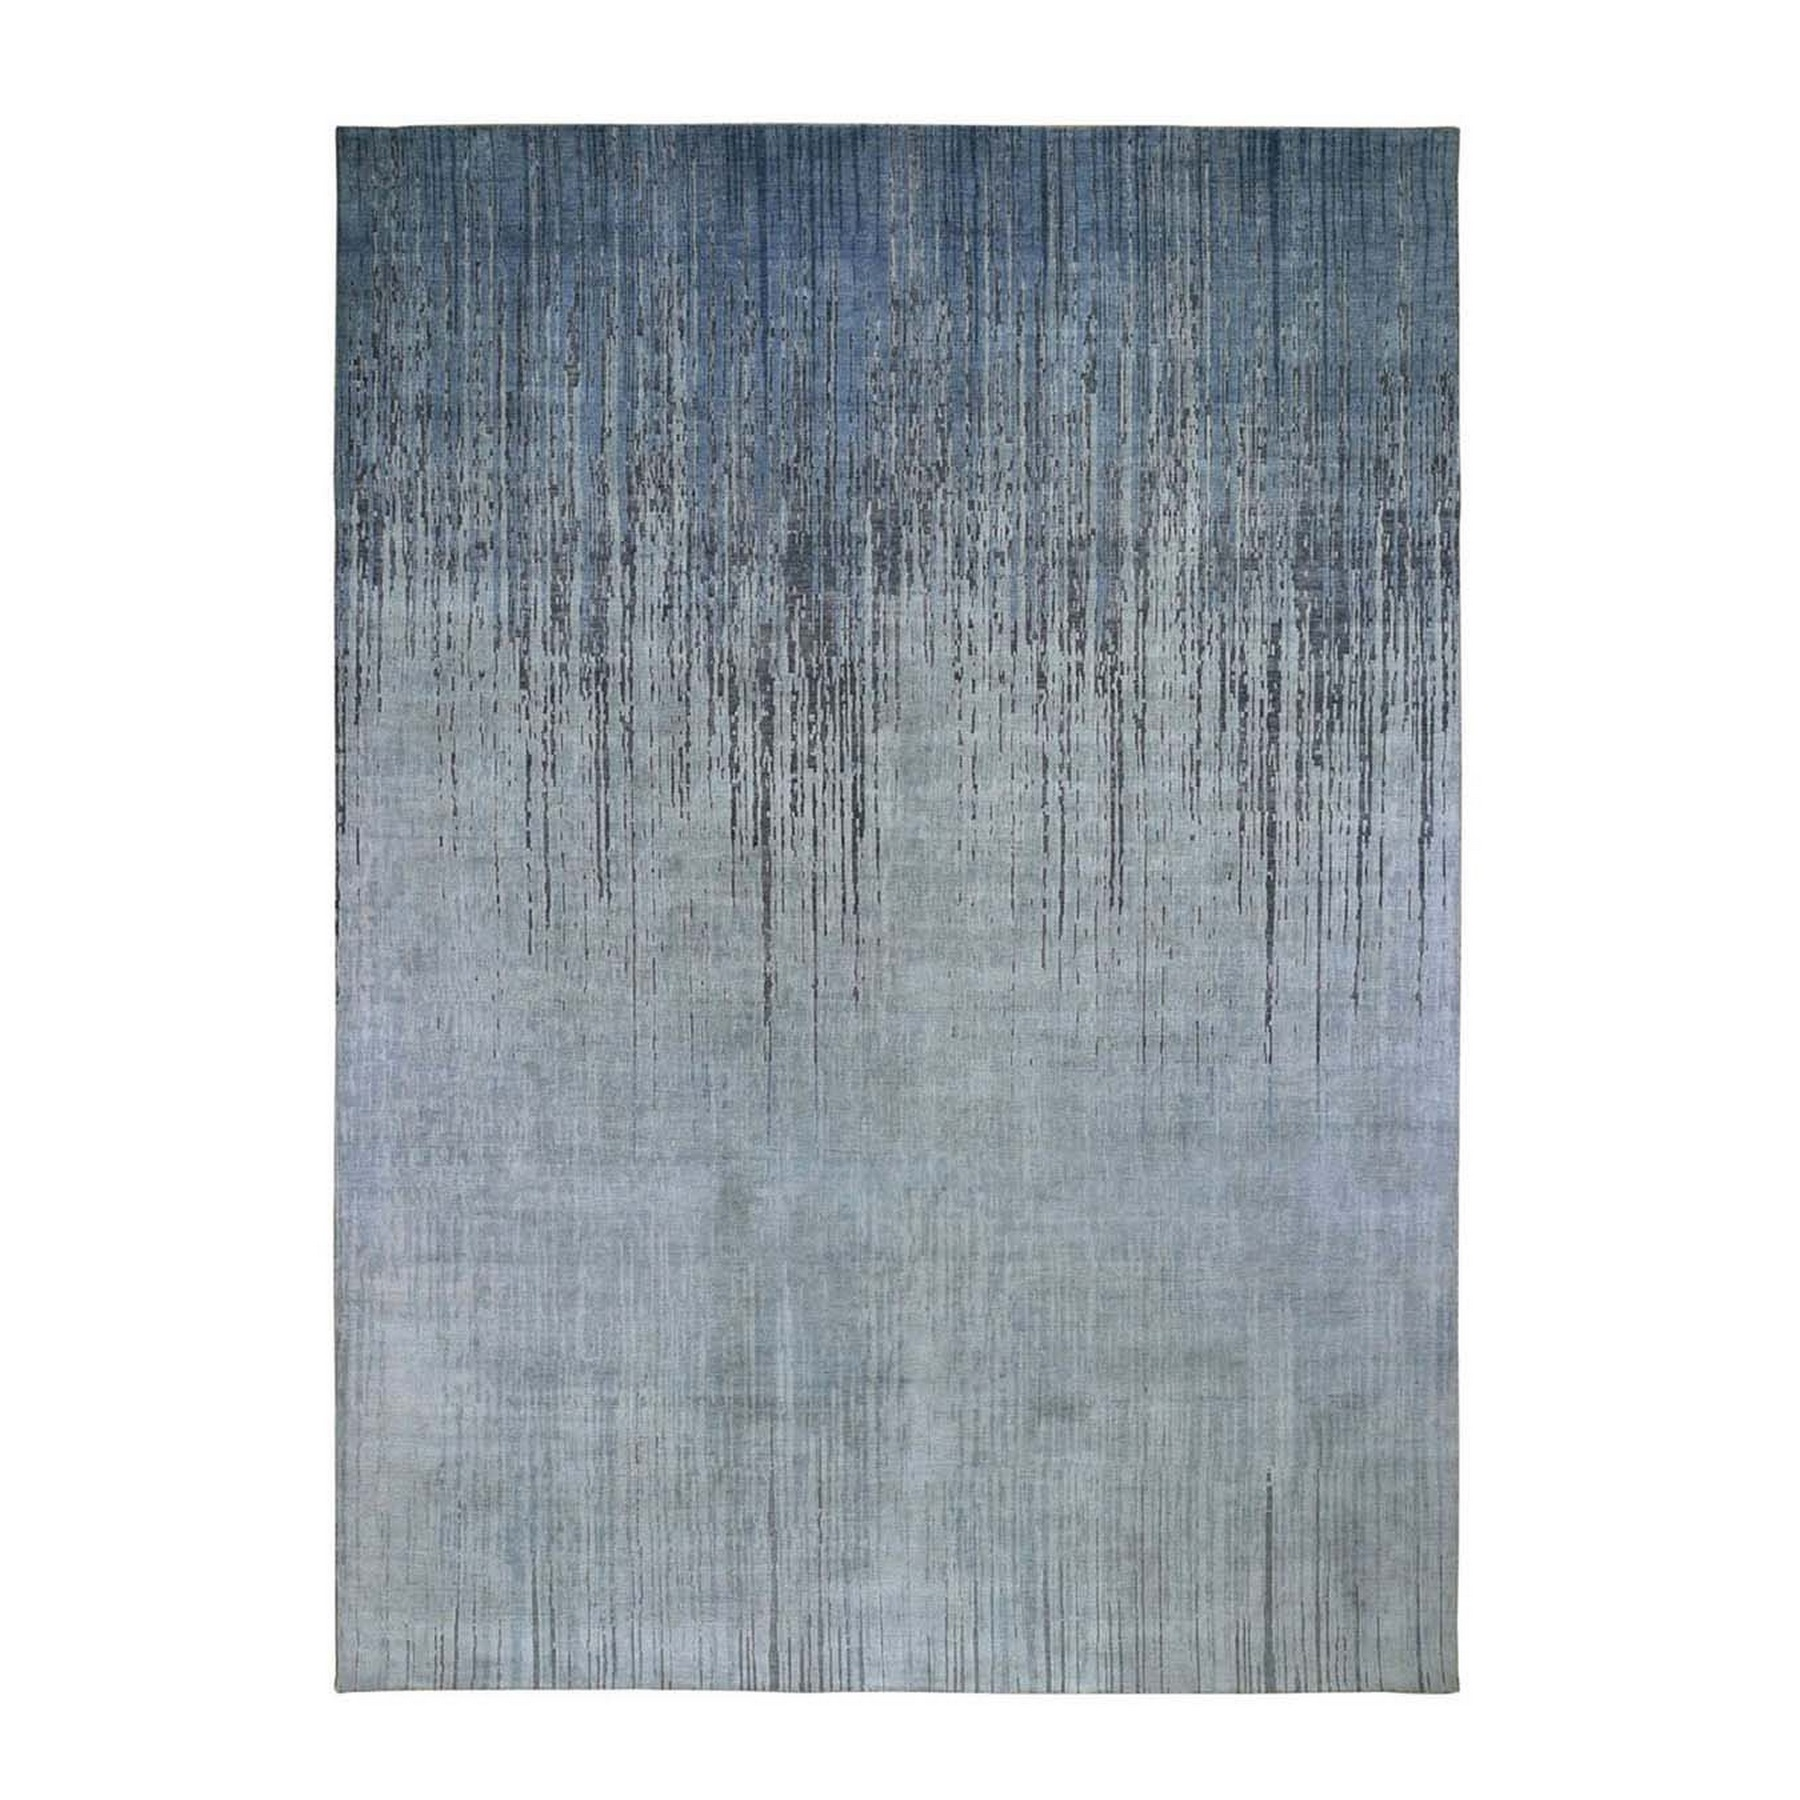 9'x12' Gray Ombre Design Pure Silk with Textured Wool Hand Knotted Oriental Rug